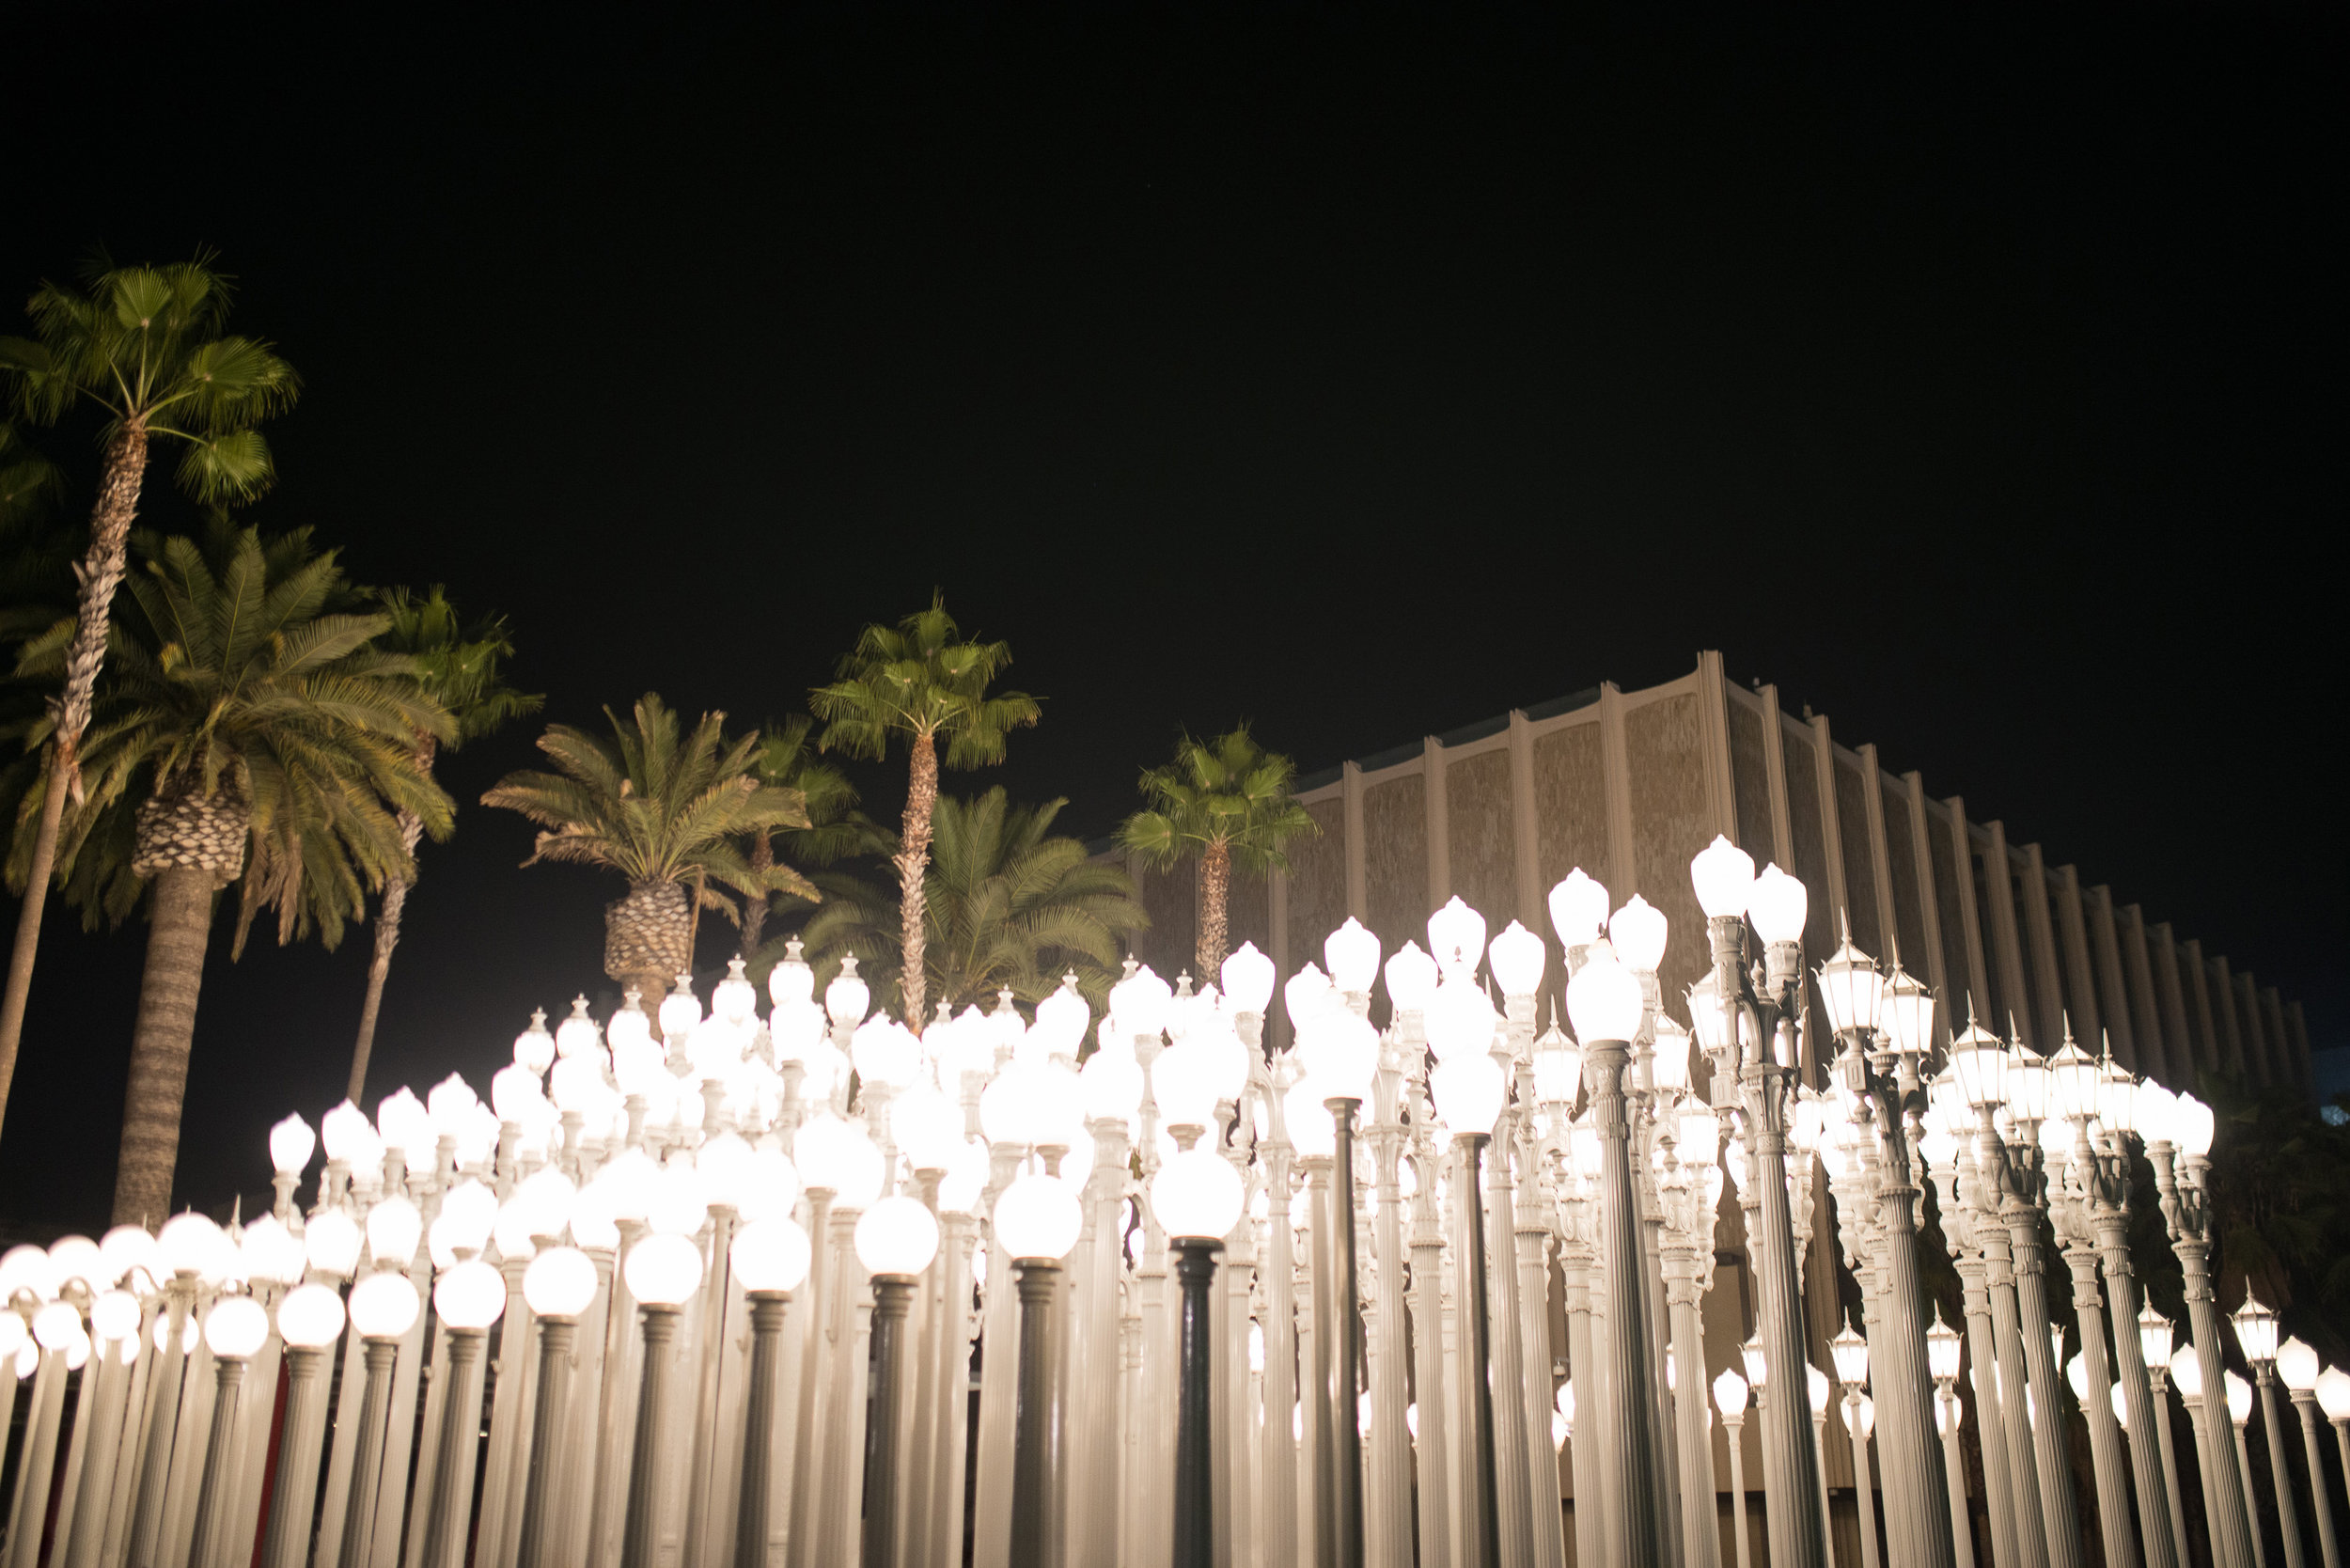 Dennys-Mamero-Photography-Architecture-Los-Angeles-LACMA.jpg